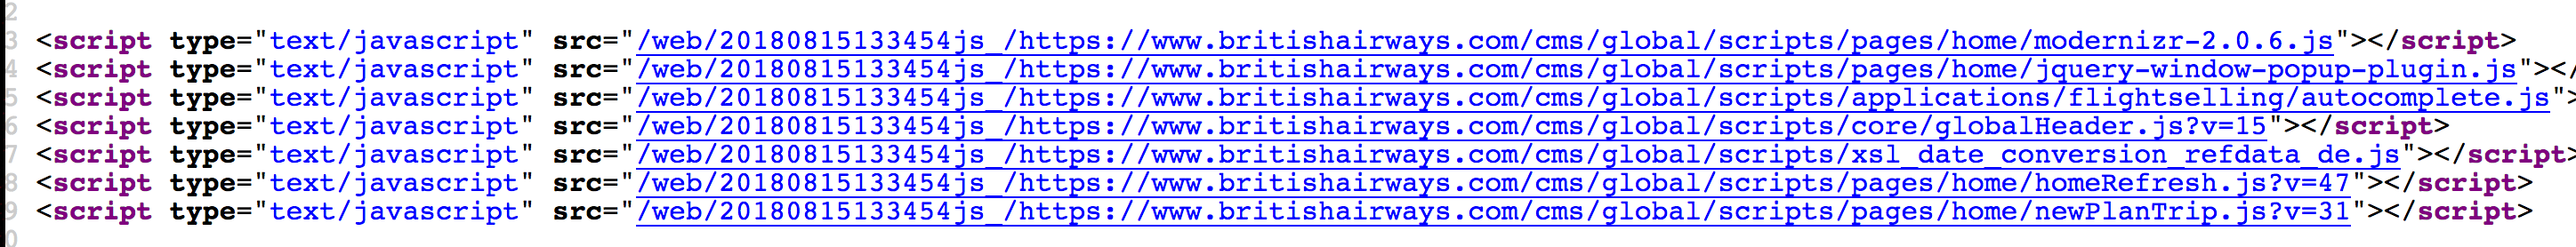 The British Airways Hack: JavaScript Weakness Pin-pointed